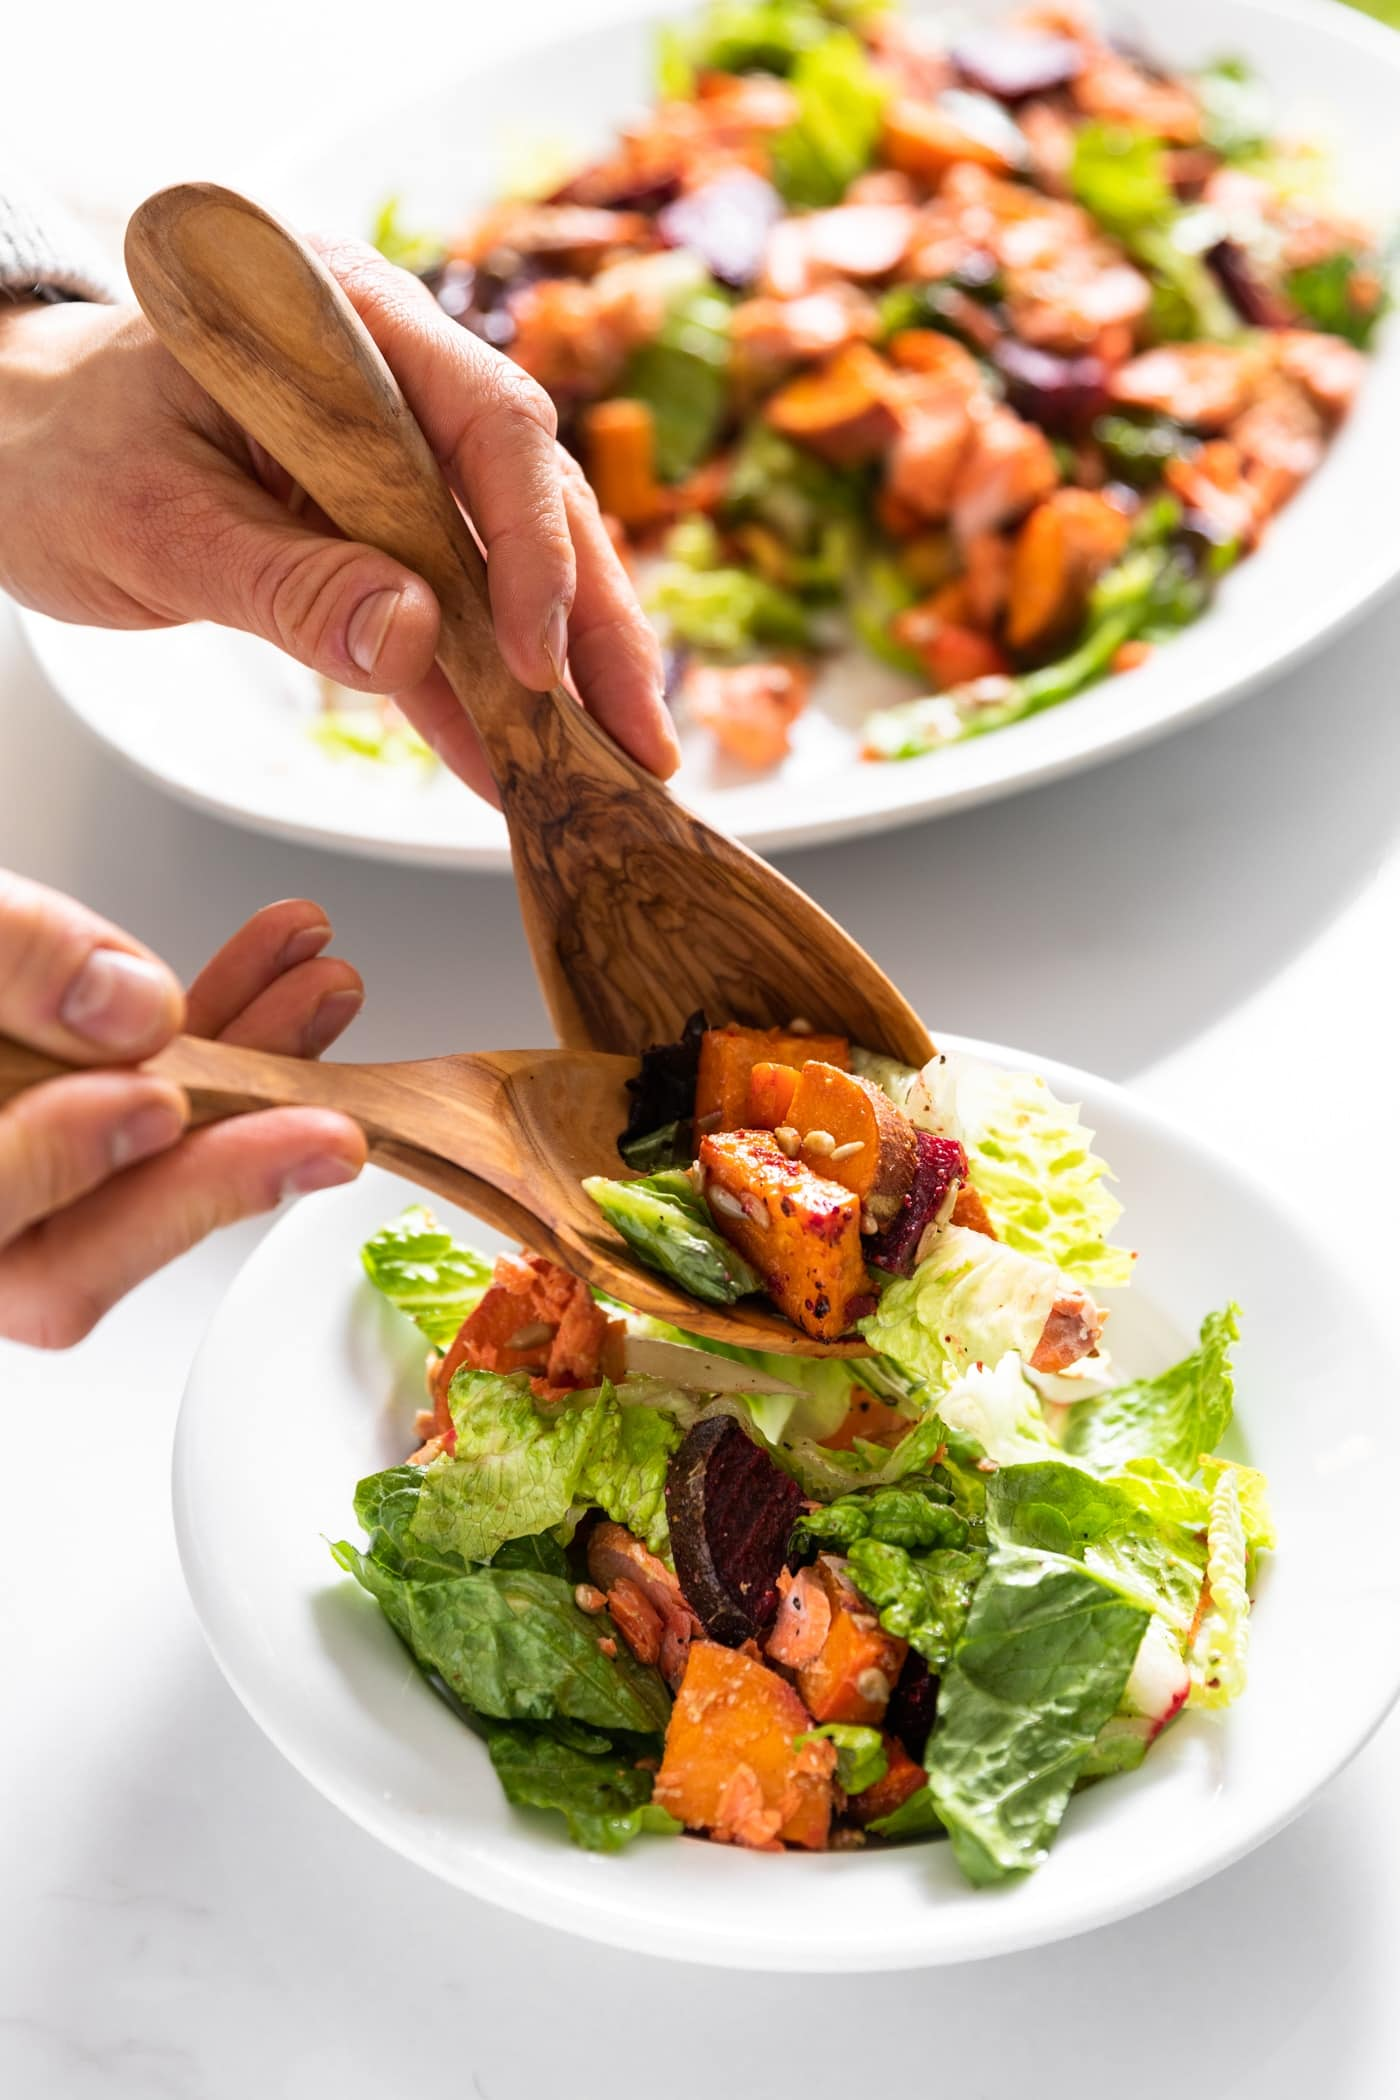 Two hands holding tongs spoon salad onto white plate from salad sitting in white plate behind